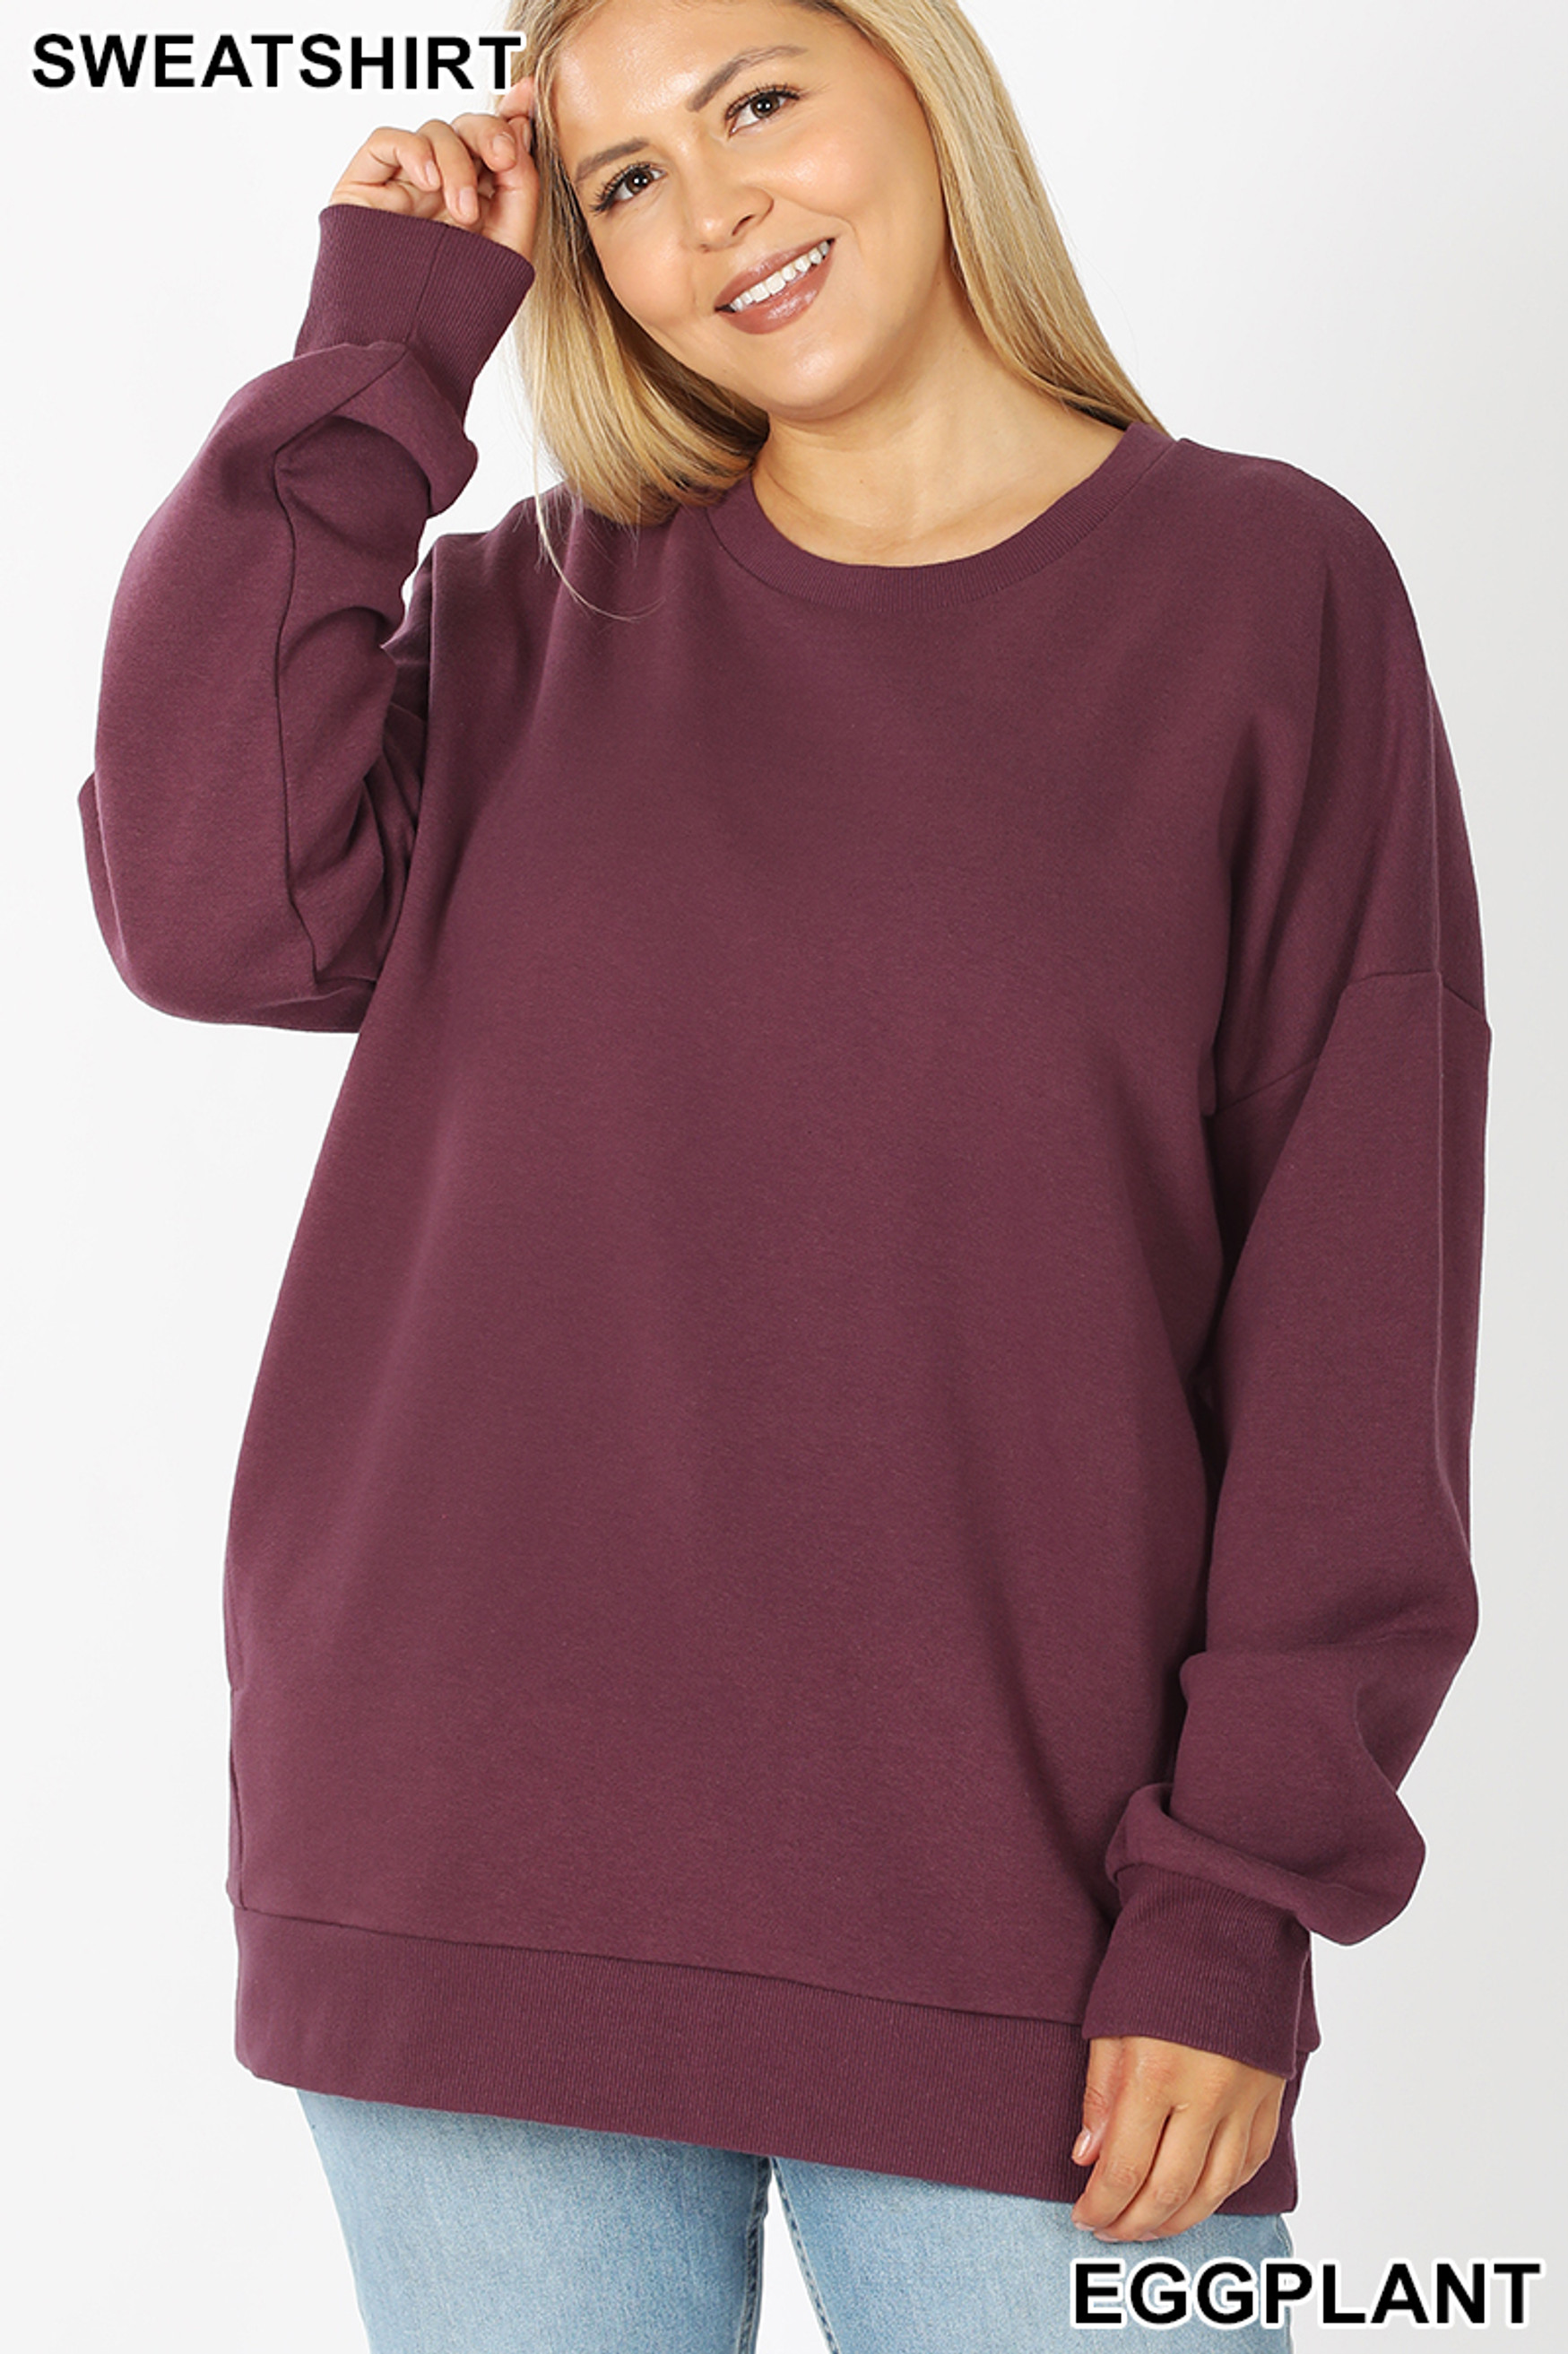 Front image of Eggplant Cotton Round Crew Neck Plus Size Sweatshirt with Side Pockets